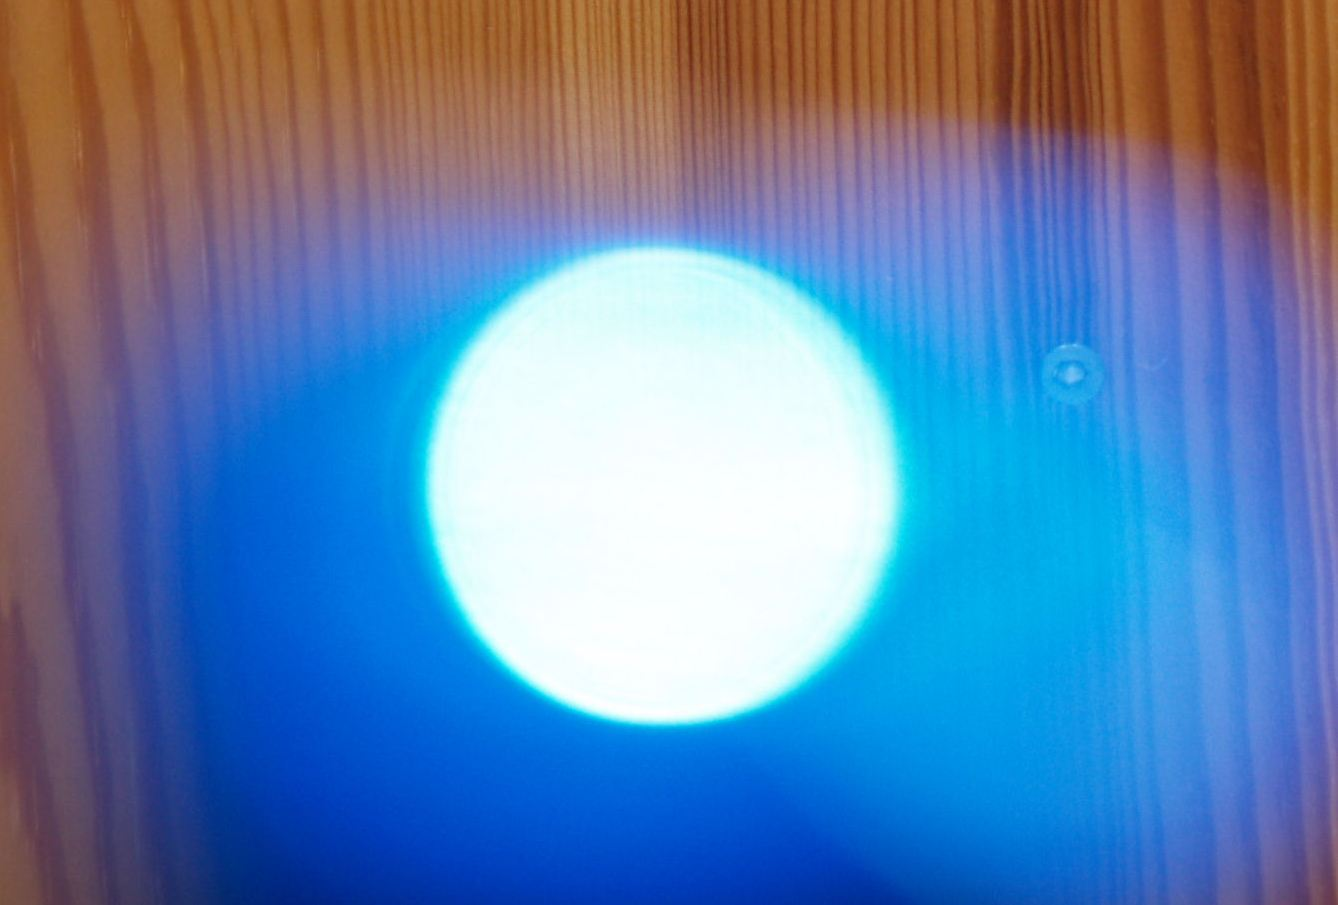 Blue Orb Infused By White Light Energy And Changing Shape